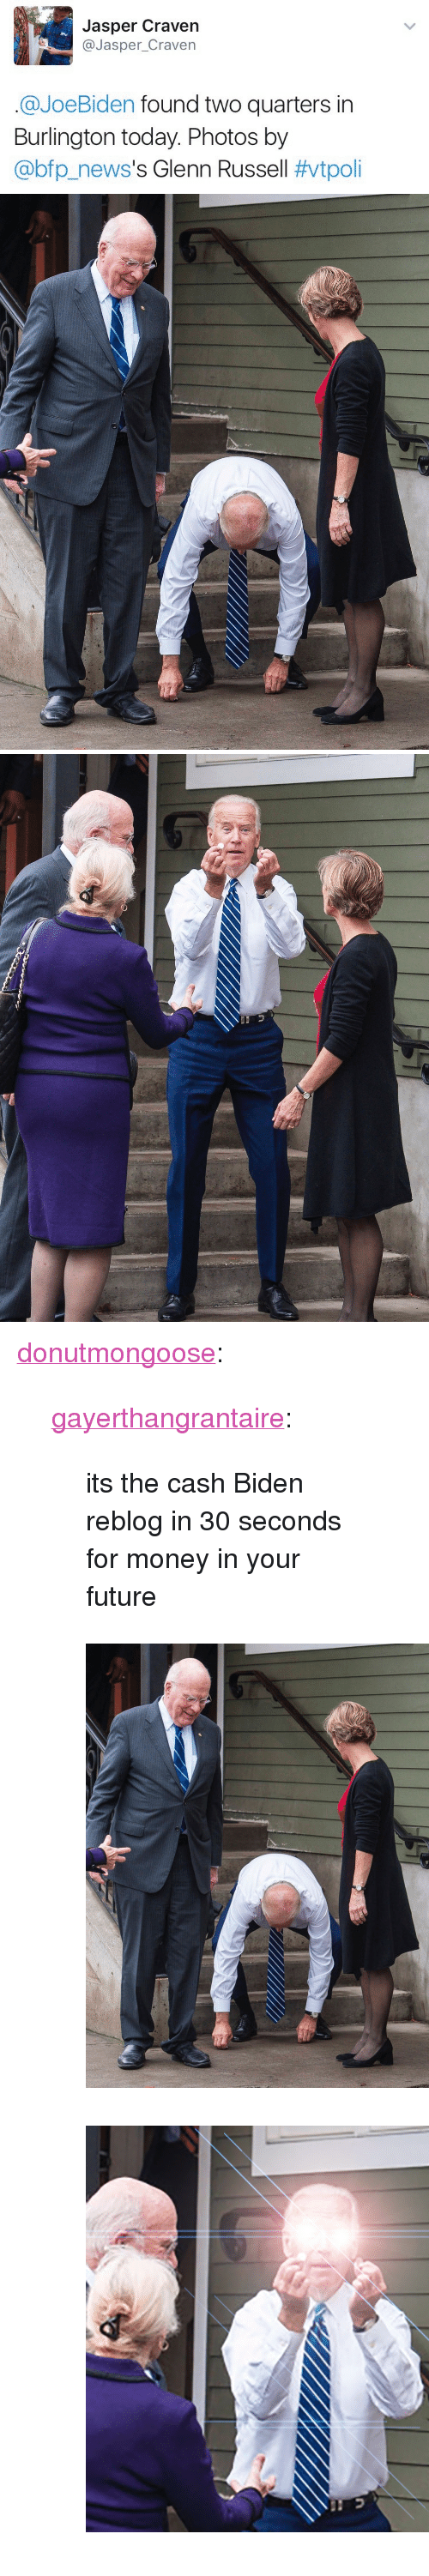 "Future, Money, and Tumblr: Jasper Craven  @Jasper_Craven  @JoeBiden found two quarters in  Burlington today. Photos by  @bp.news's Glenn Russell <p><a href=""http://donutmongoose.tumblr.com/post/155448667420/gayerthangrantaire-its-the-cash-biden-reblog-in"" class=""tumblr_blog"">donutmongoose</a>:</p>  <blockquote><p><a href=""http://gayerthangrantaire.tumblr.com/post/153355558604"" class=""tumblr_blog"">gayerthangrantaire</a>:</p> <blockquote><p>its the cash Biden reblog in 30 seconds for money in your future</p></blockquote> <figure class=""tmblr-full"" data-orig-height=""518"" data-orig-width=""400""><img src=""https://78.media.tumblr.com/8aa641e925cfb780f4858fe3558ec4c3/tumblr_inline_ojbqh7avc41u0ah77_540.jpg"" data-orig-height=""518"" data-orig-width=""400""/></figure><figure class=""tmblr-full"" data-orig-height=""614"" data-orig-width=""700""><img src=""https://78.media.tumblr.com/52723c80a12821bad3c859b0d637d474/tumblr_inline_ojbqhcRPpY1u0ah77_540.png"" data-orig-height=""614"" data-orig-width=""700""/></figure></blockquote>"